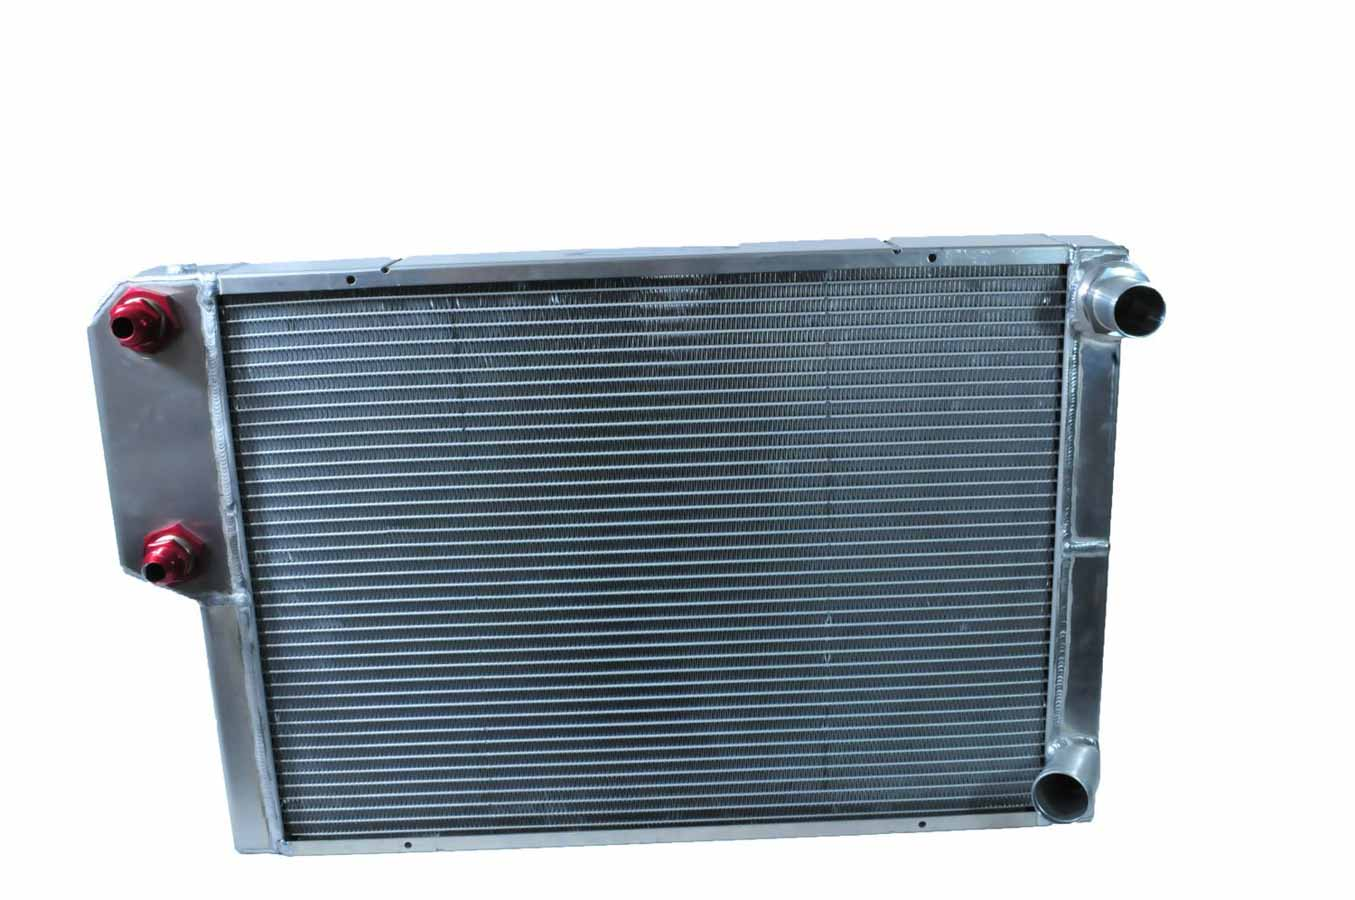 """C AND R 30"""" W x 19"""" H x 1-3 4"""" D Aluminum Dual Pass Radiator P N 806-30191 by C AND R Racing Radiators"""